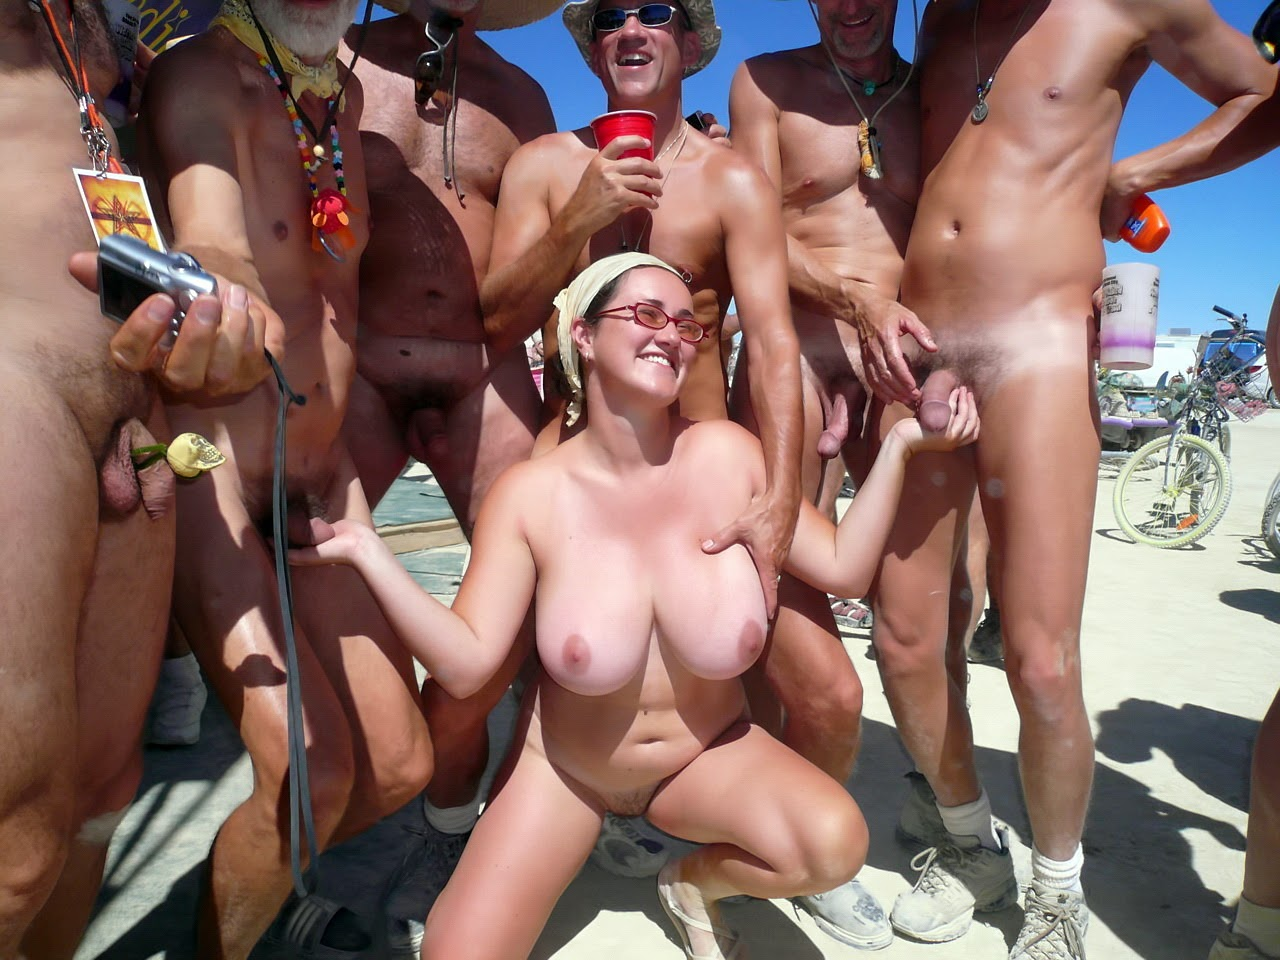 Will know, free big tit naturists pictures much